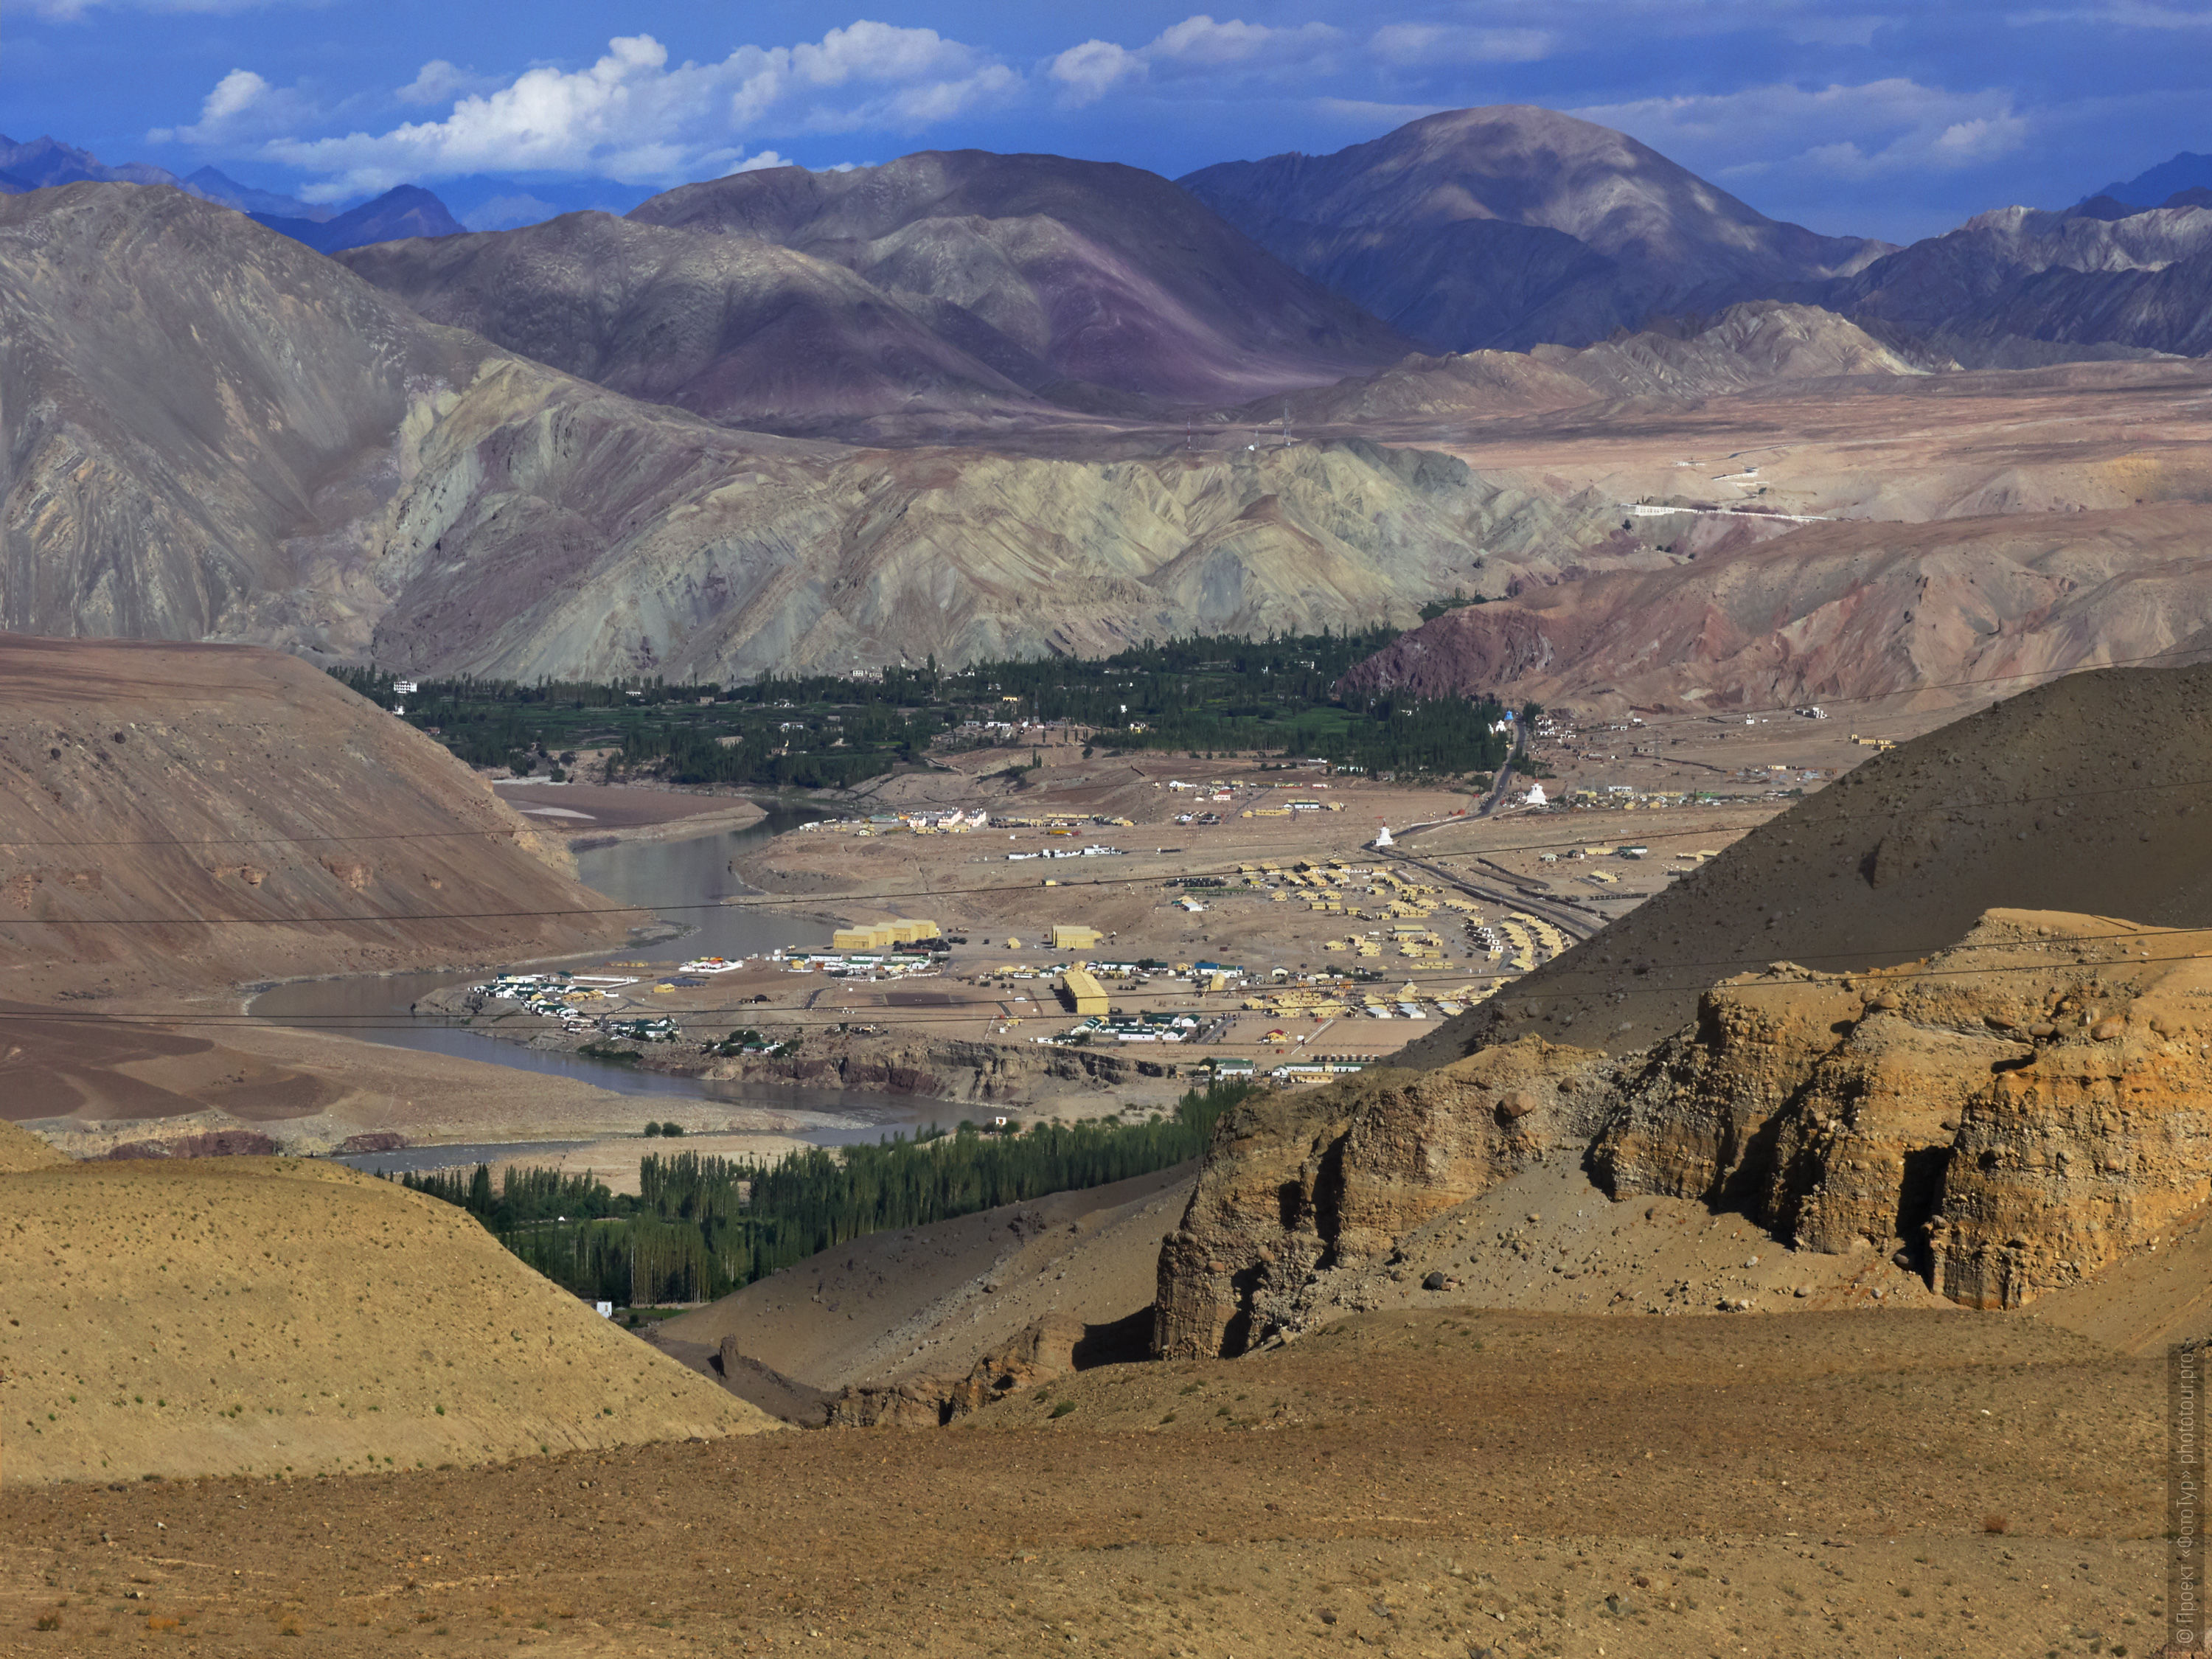 Valley of the Indus River. Tour for artists in Tibet: Watercolor-1: Watercolor painting in Ladakh with Pavel Pugachev, 04.08. - 13.08. 2019.